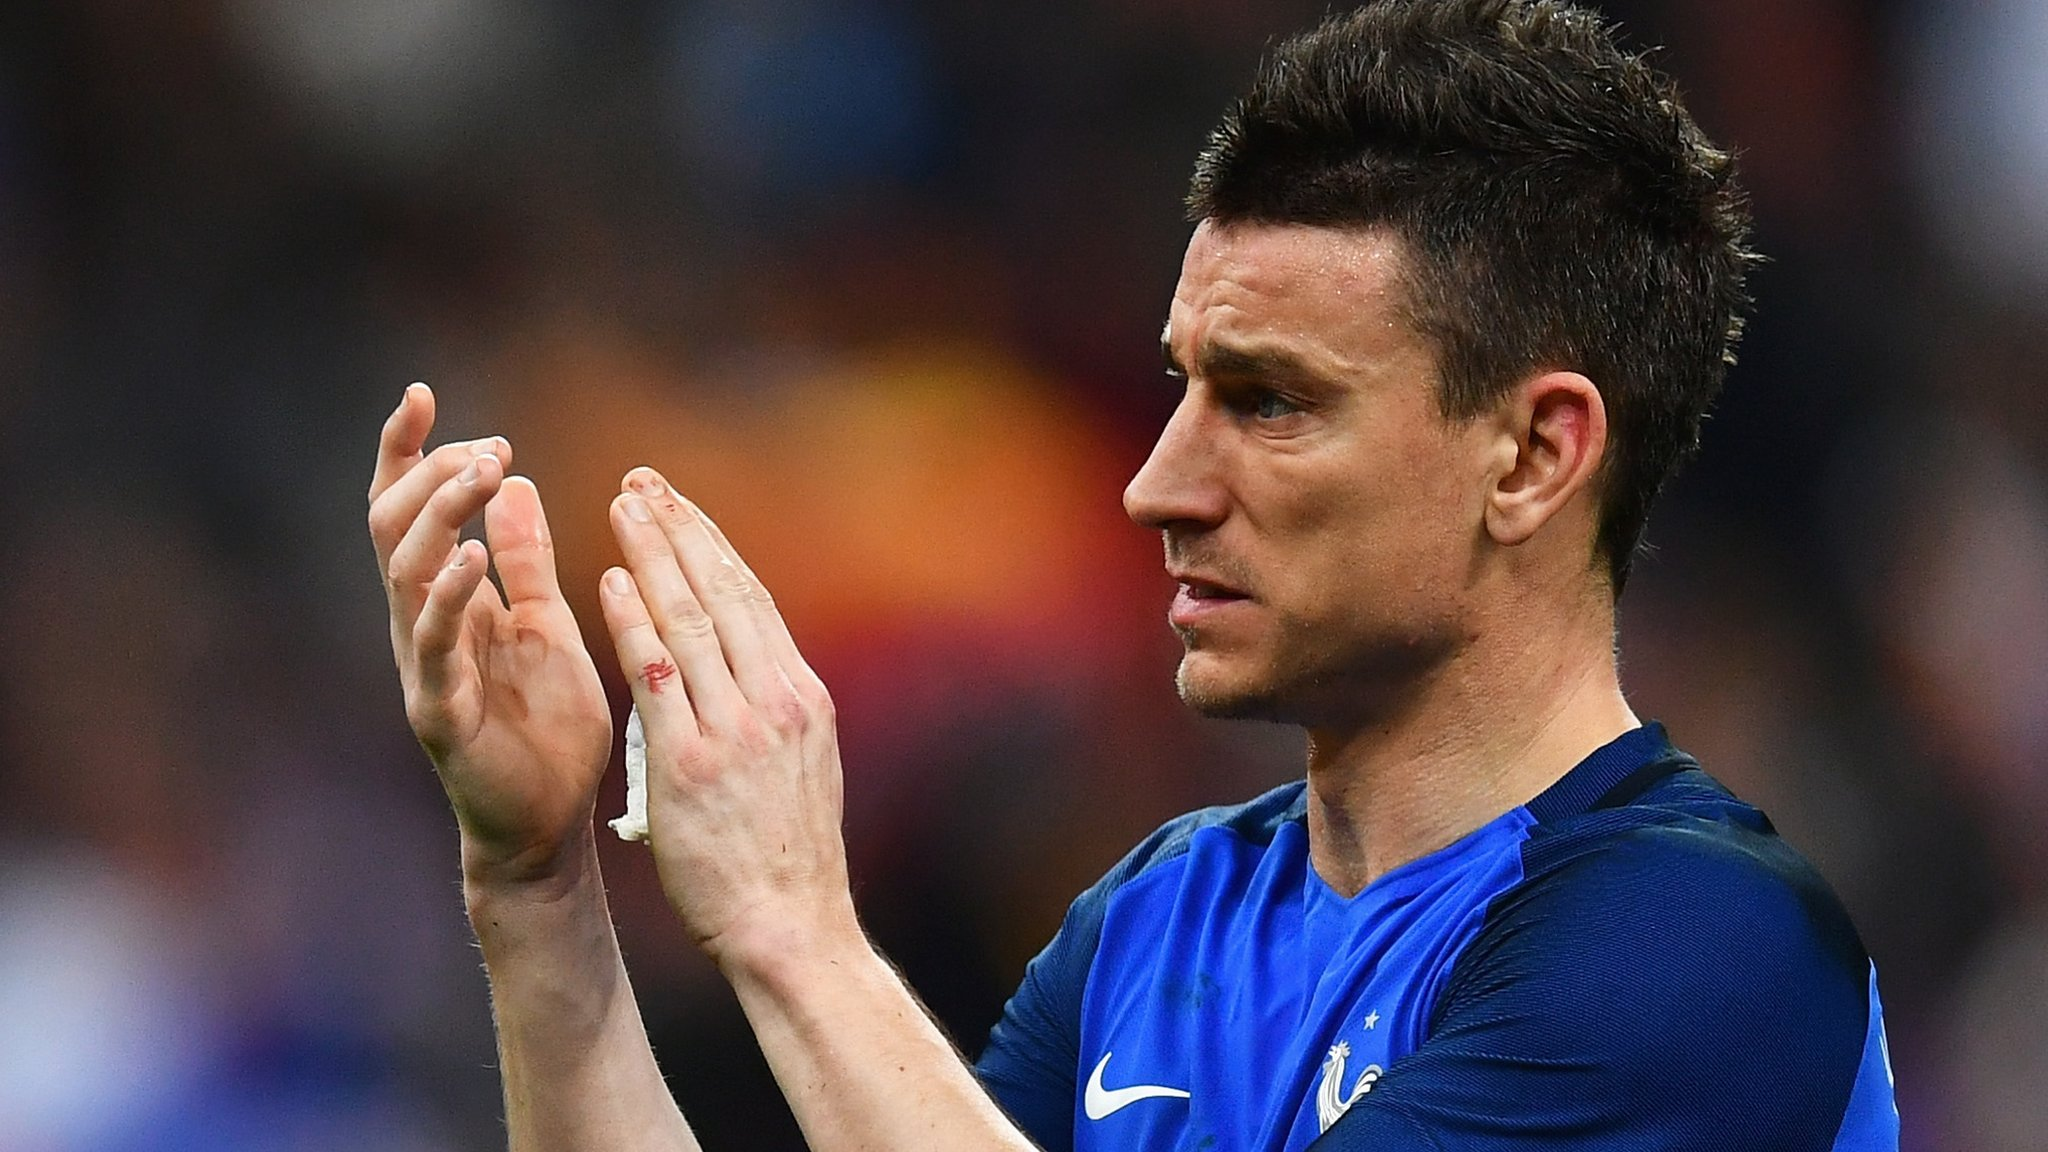 Koscielny criticises Deschamps as he quits international football